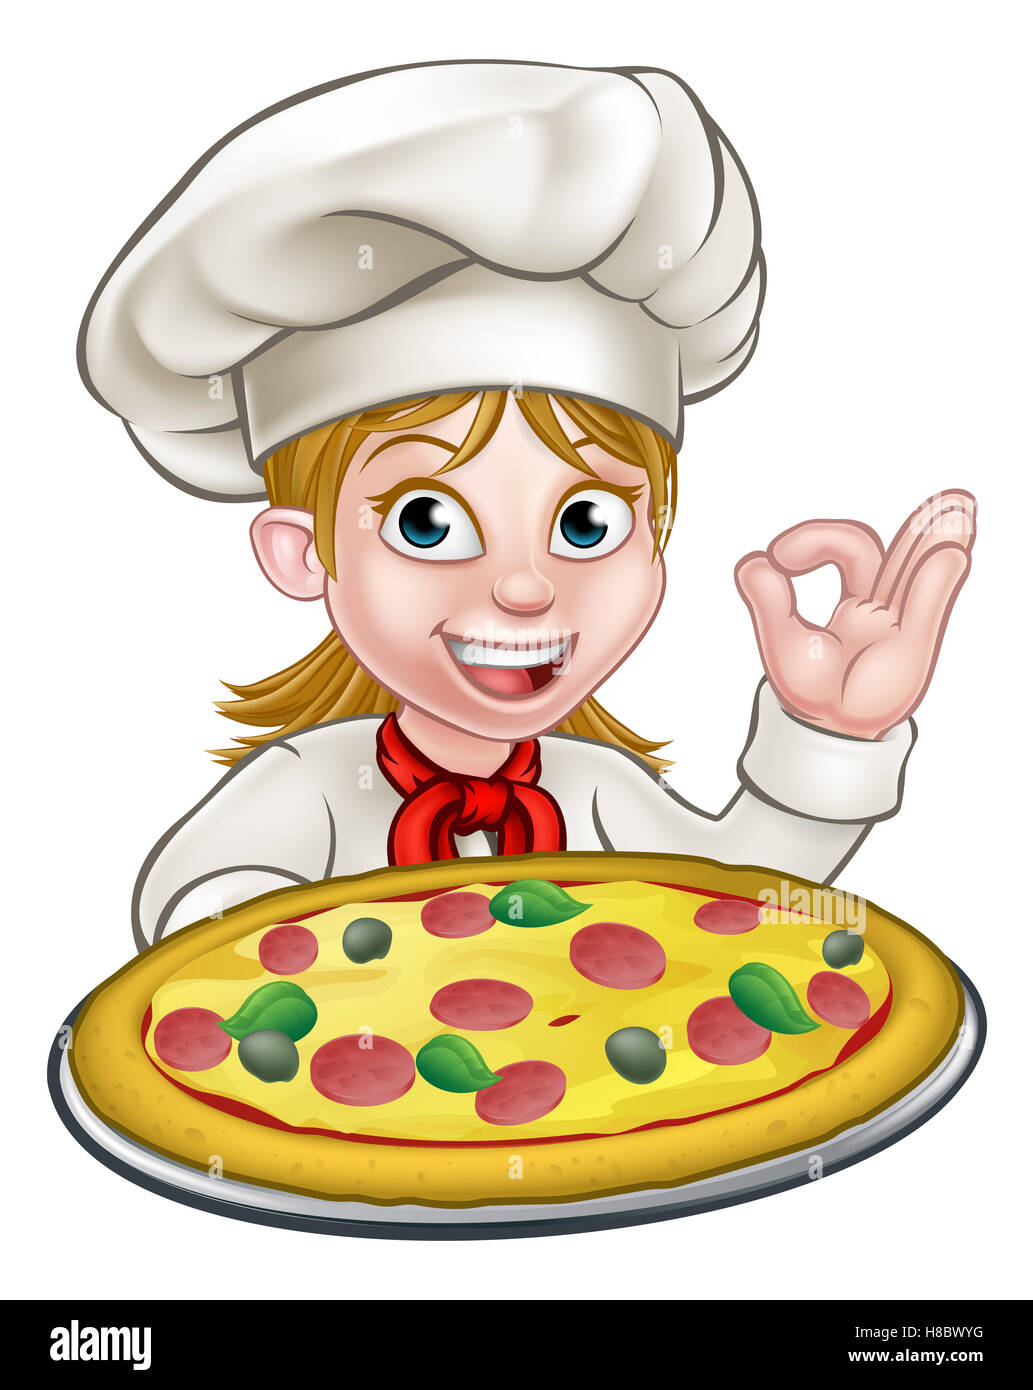 Cartoon Female Woman Chef Character Holding A Pizza And Giving A